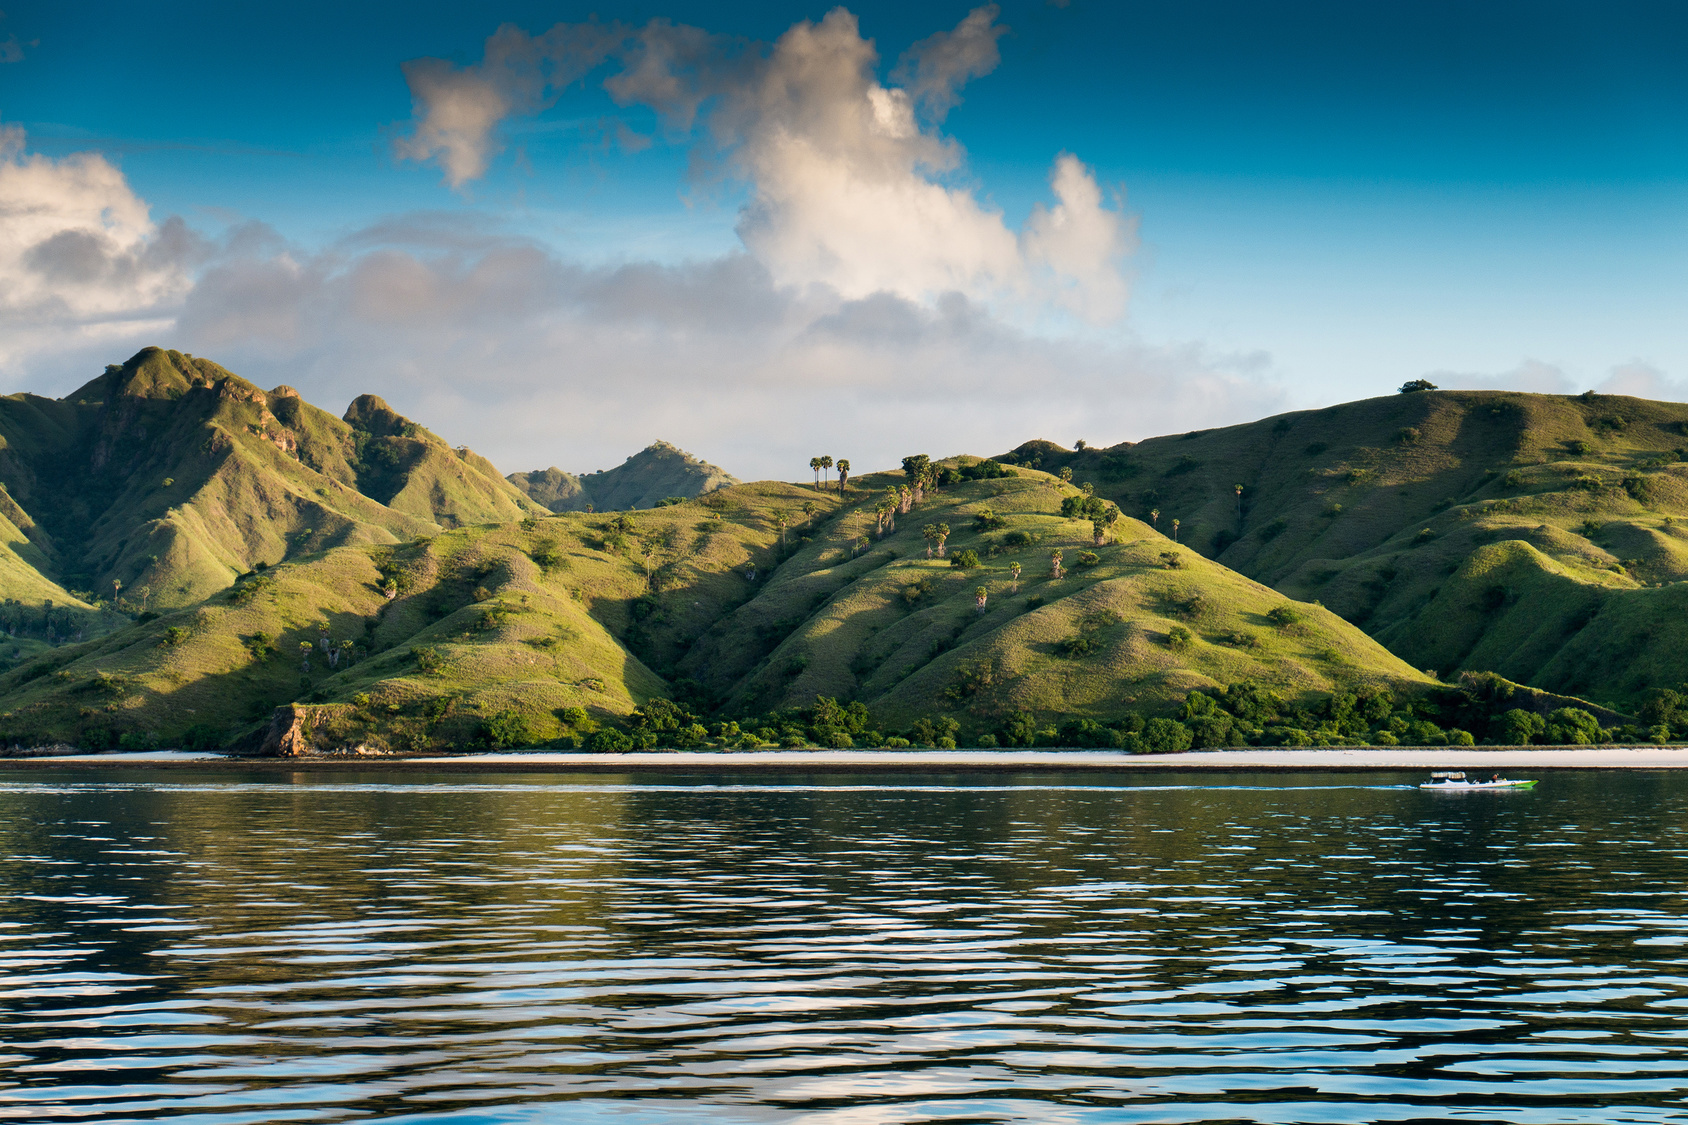 Coastal landscape of island Komodo National Park, UNESCO World Heritage Site, Indonesia, Southeast Asia